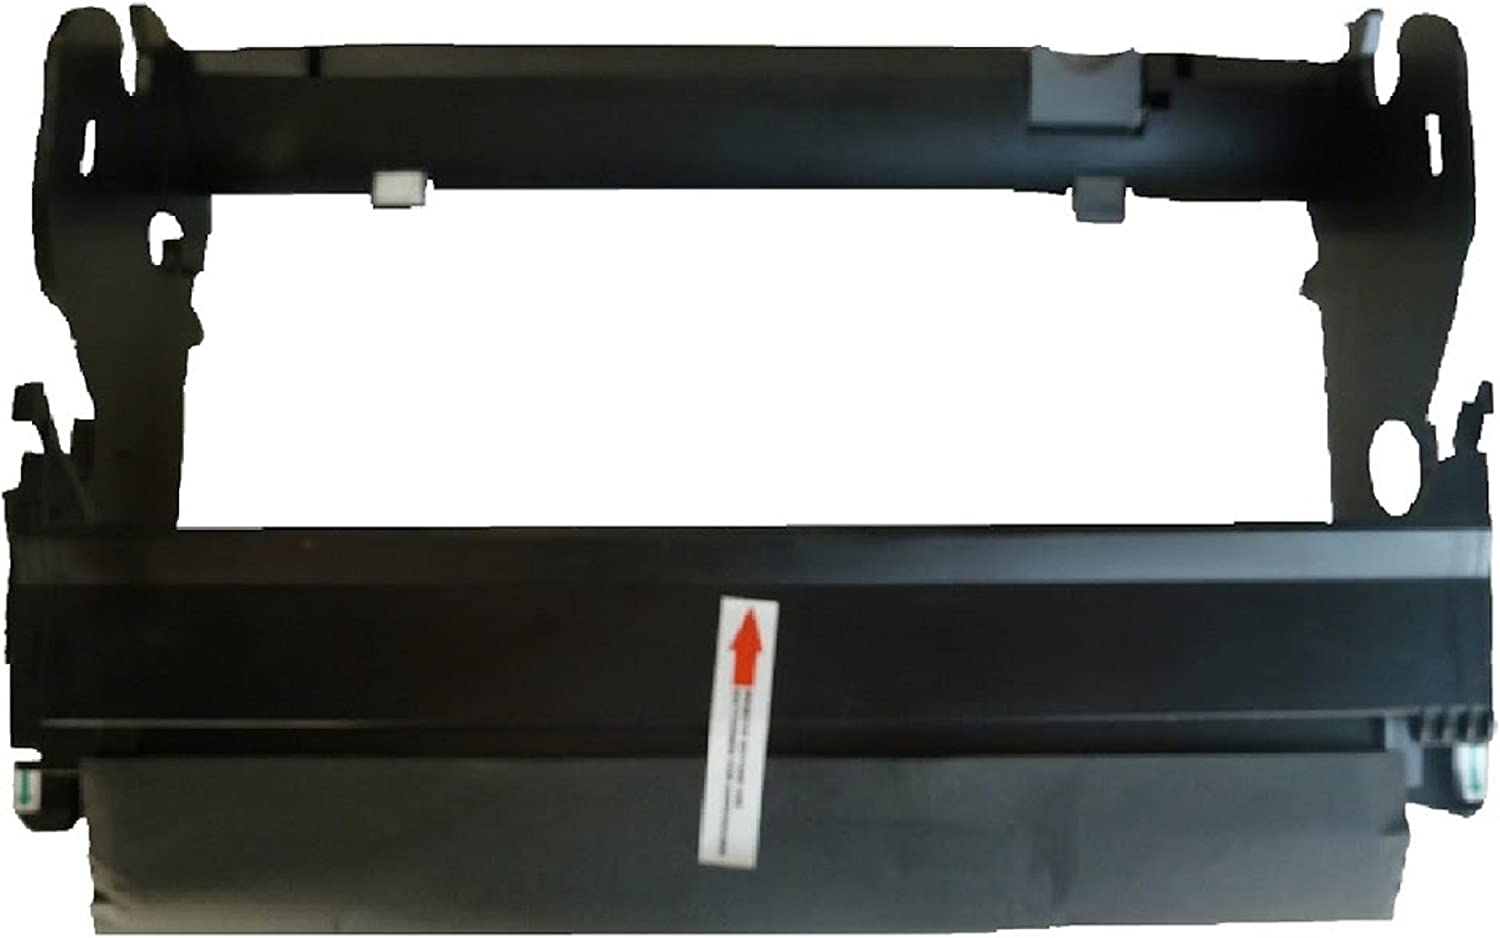 Dell Compatible DRUM For Use With Dell 1700, 1700n, 1710, 1710n Printers - 30K Page Yield